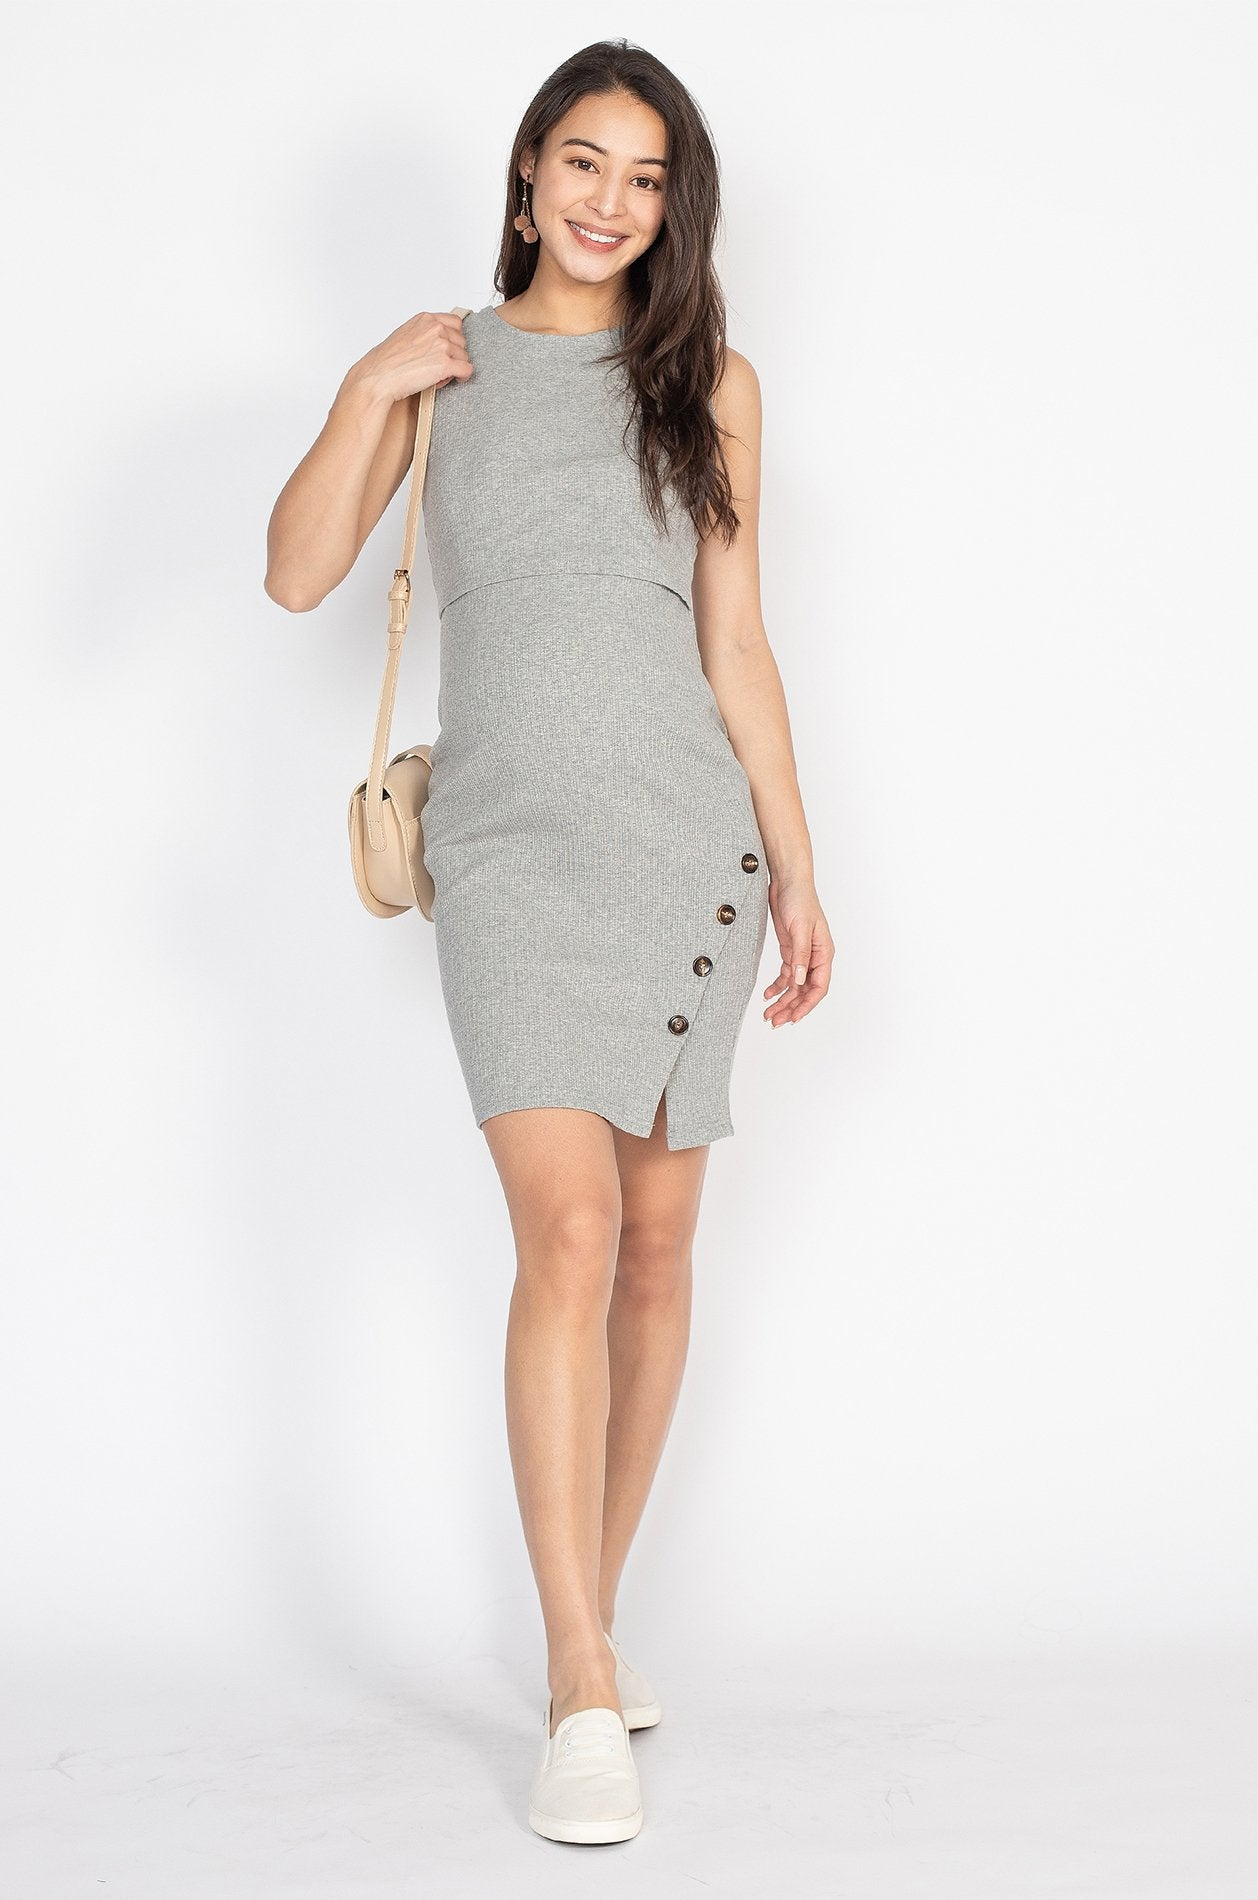 Alicia Side Button Body Con Nursing Dress in Grey  by Jump Eat Cry - Maternity and nursing wear